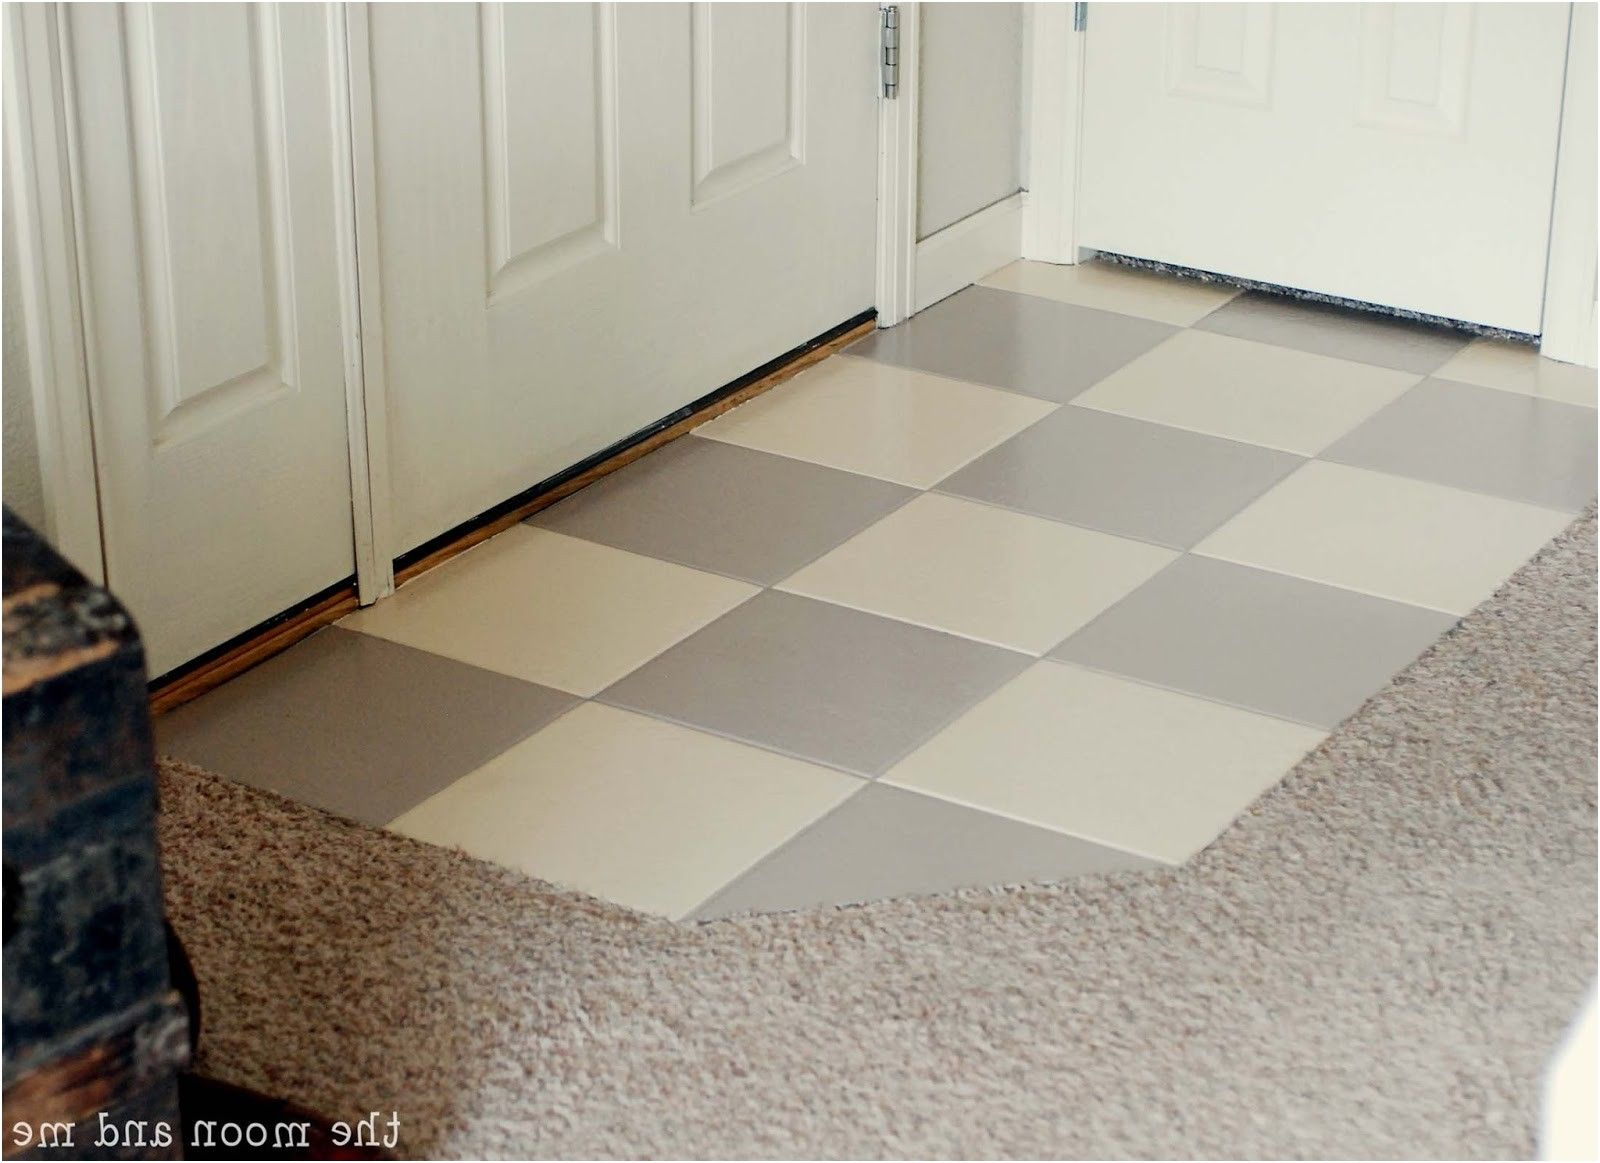 Awesome lovely can you paint bathroom floor tile mifd283 awesome lovely can you paint bathroom floor tile dailygadgetfo Choice Image